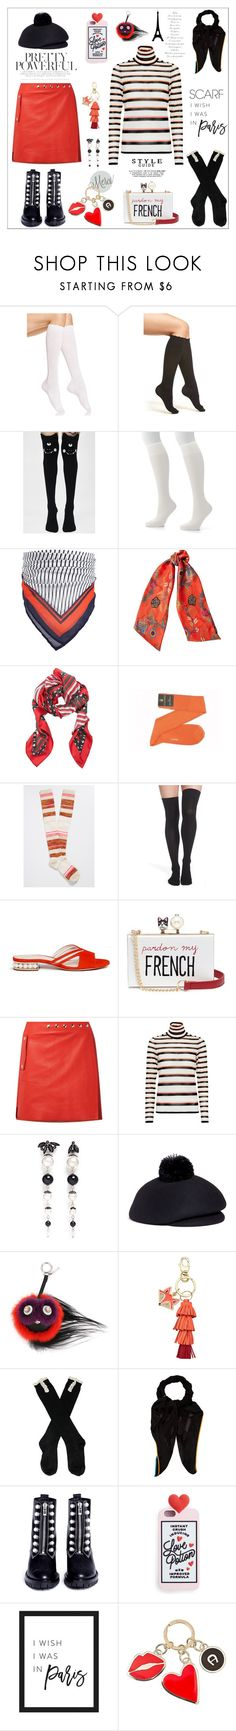 """Paris Scarf"" by yours-styling-best-friend ❤ liked on Polyvore featuring HUE, Nordstrom, Killstar, Hanes, Forever 21, Etro, Fendi, maurices, Nicholas Kirkwood and Cecilia Ma"